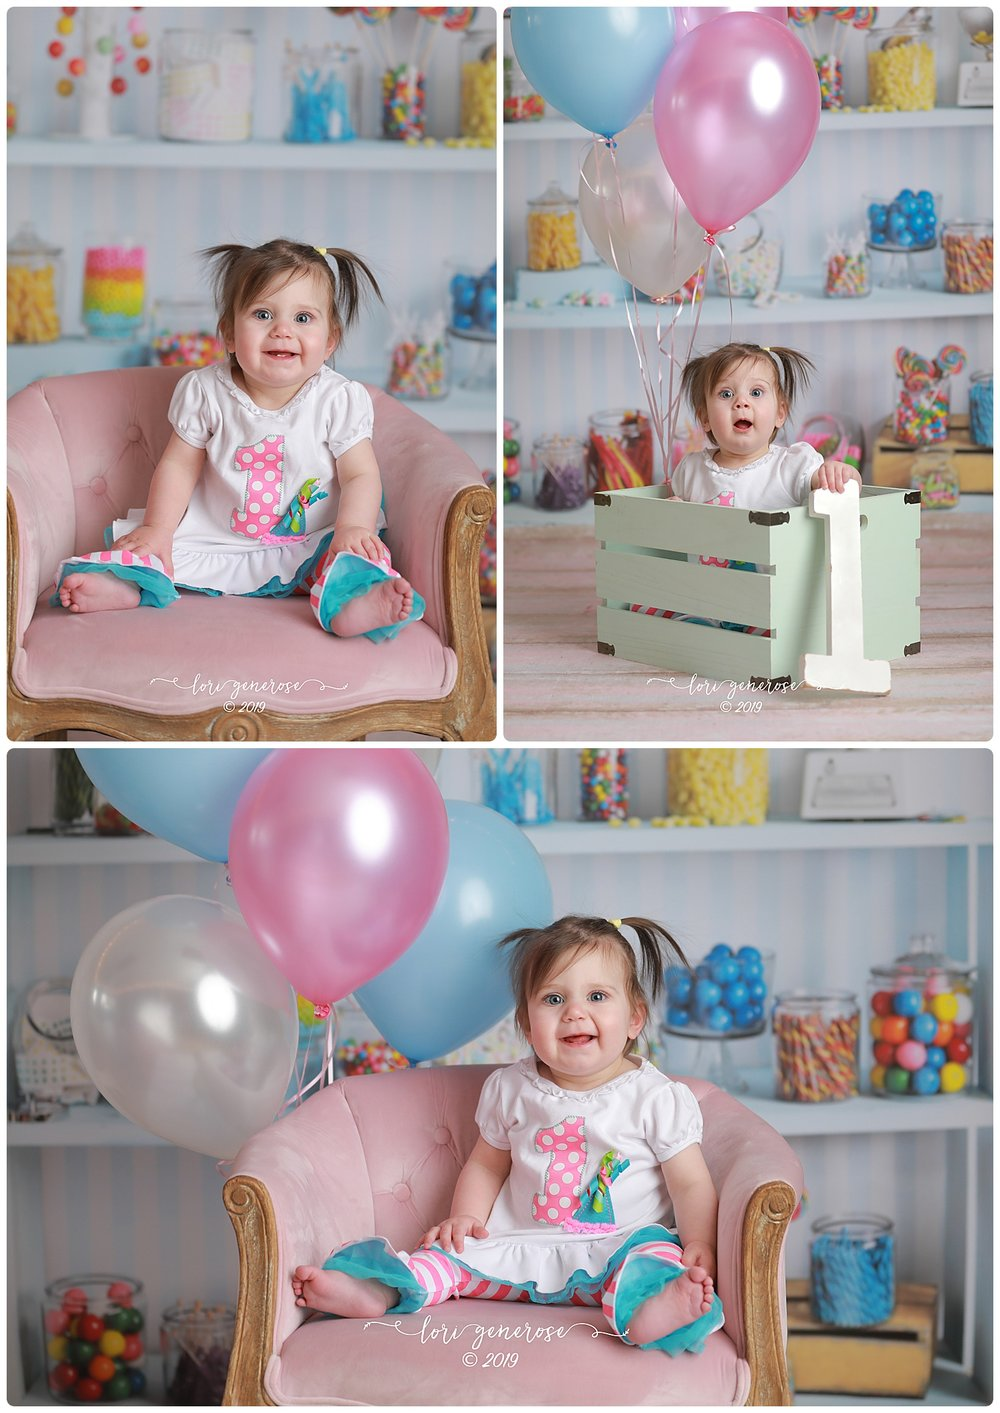 Her outfit worked perfectly with my candy shop backdrop- add some balloons and her sweet little face and PERFECTION! Sweet as sugar!